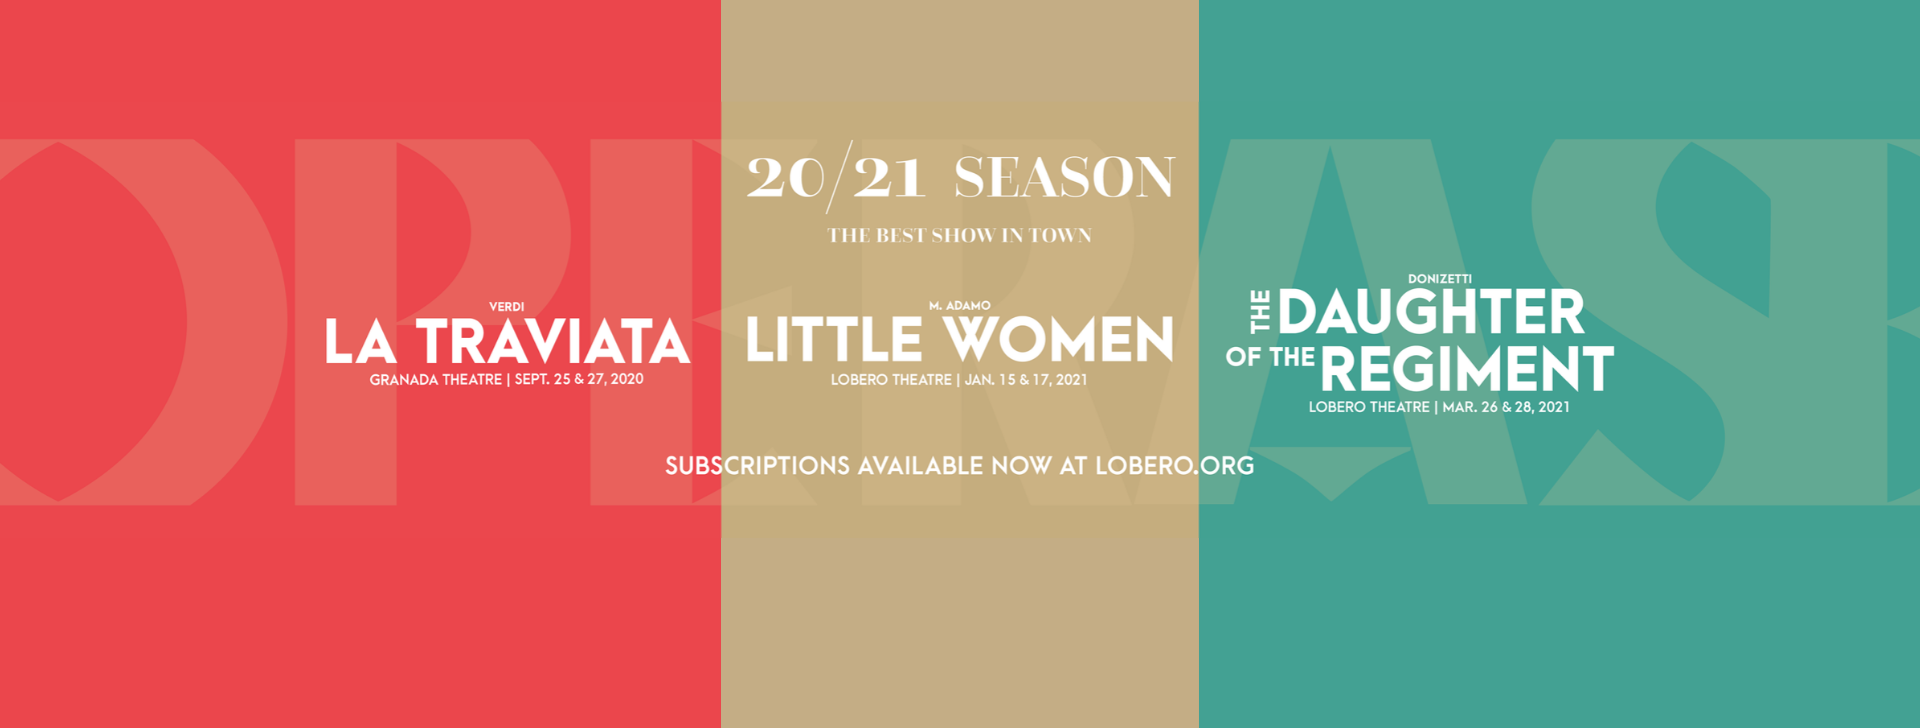 20|21 Season Subscriptions